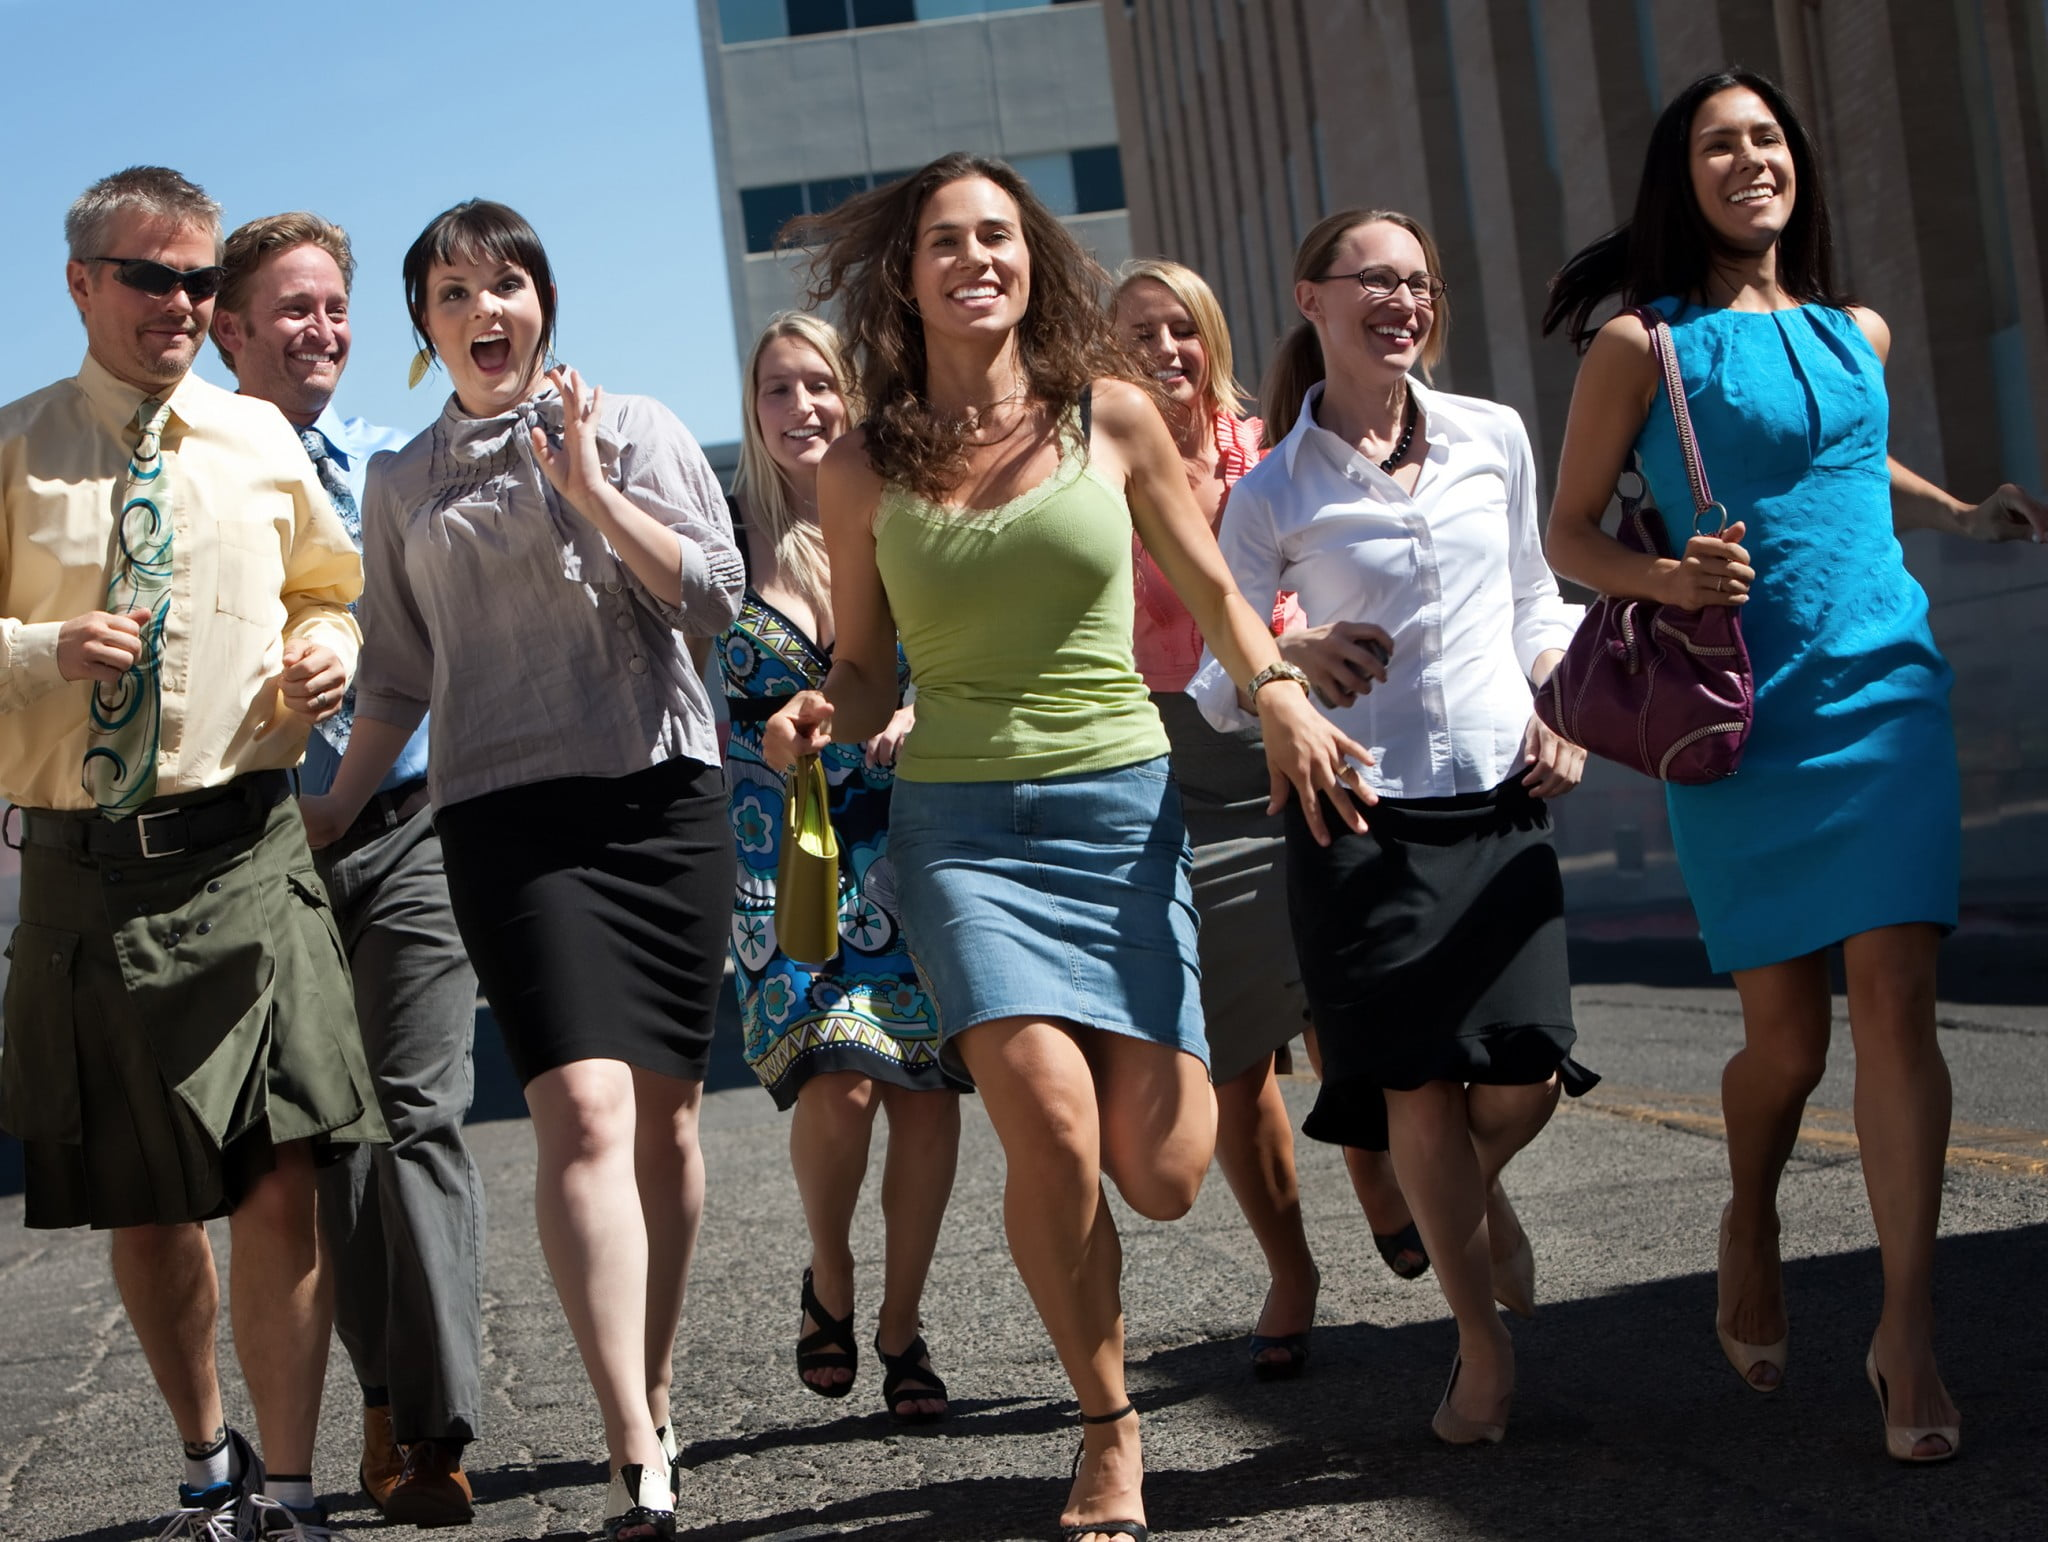 be more active: business workers walk down the street